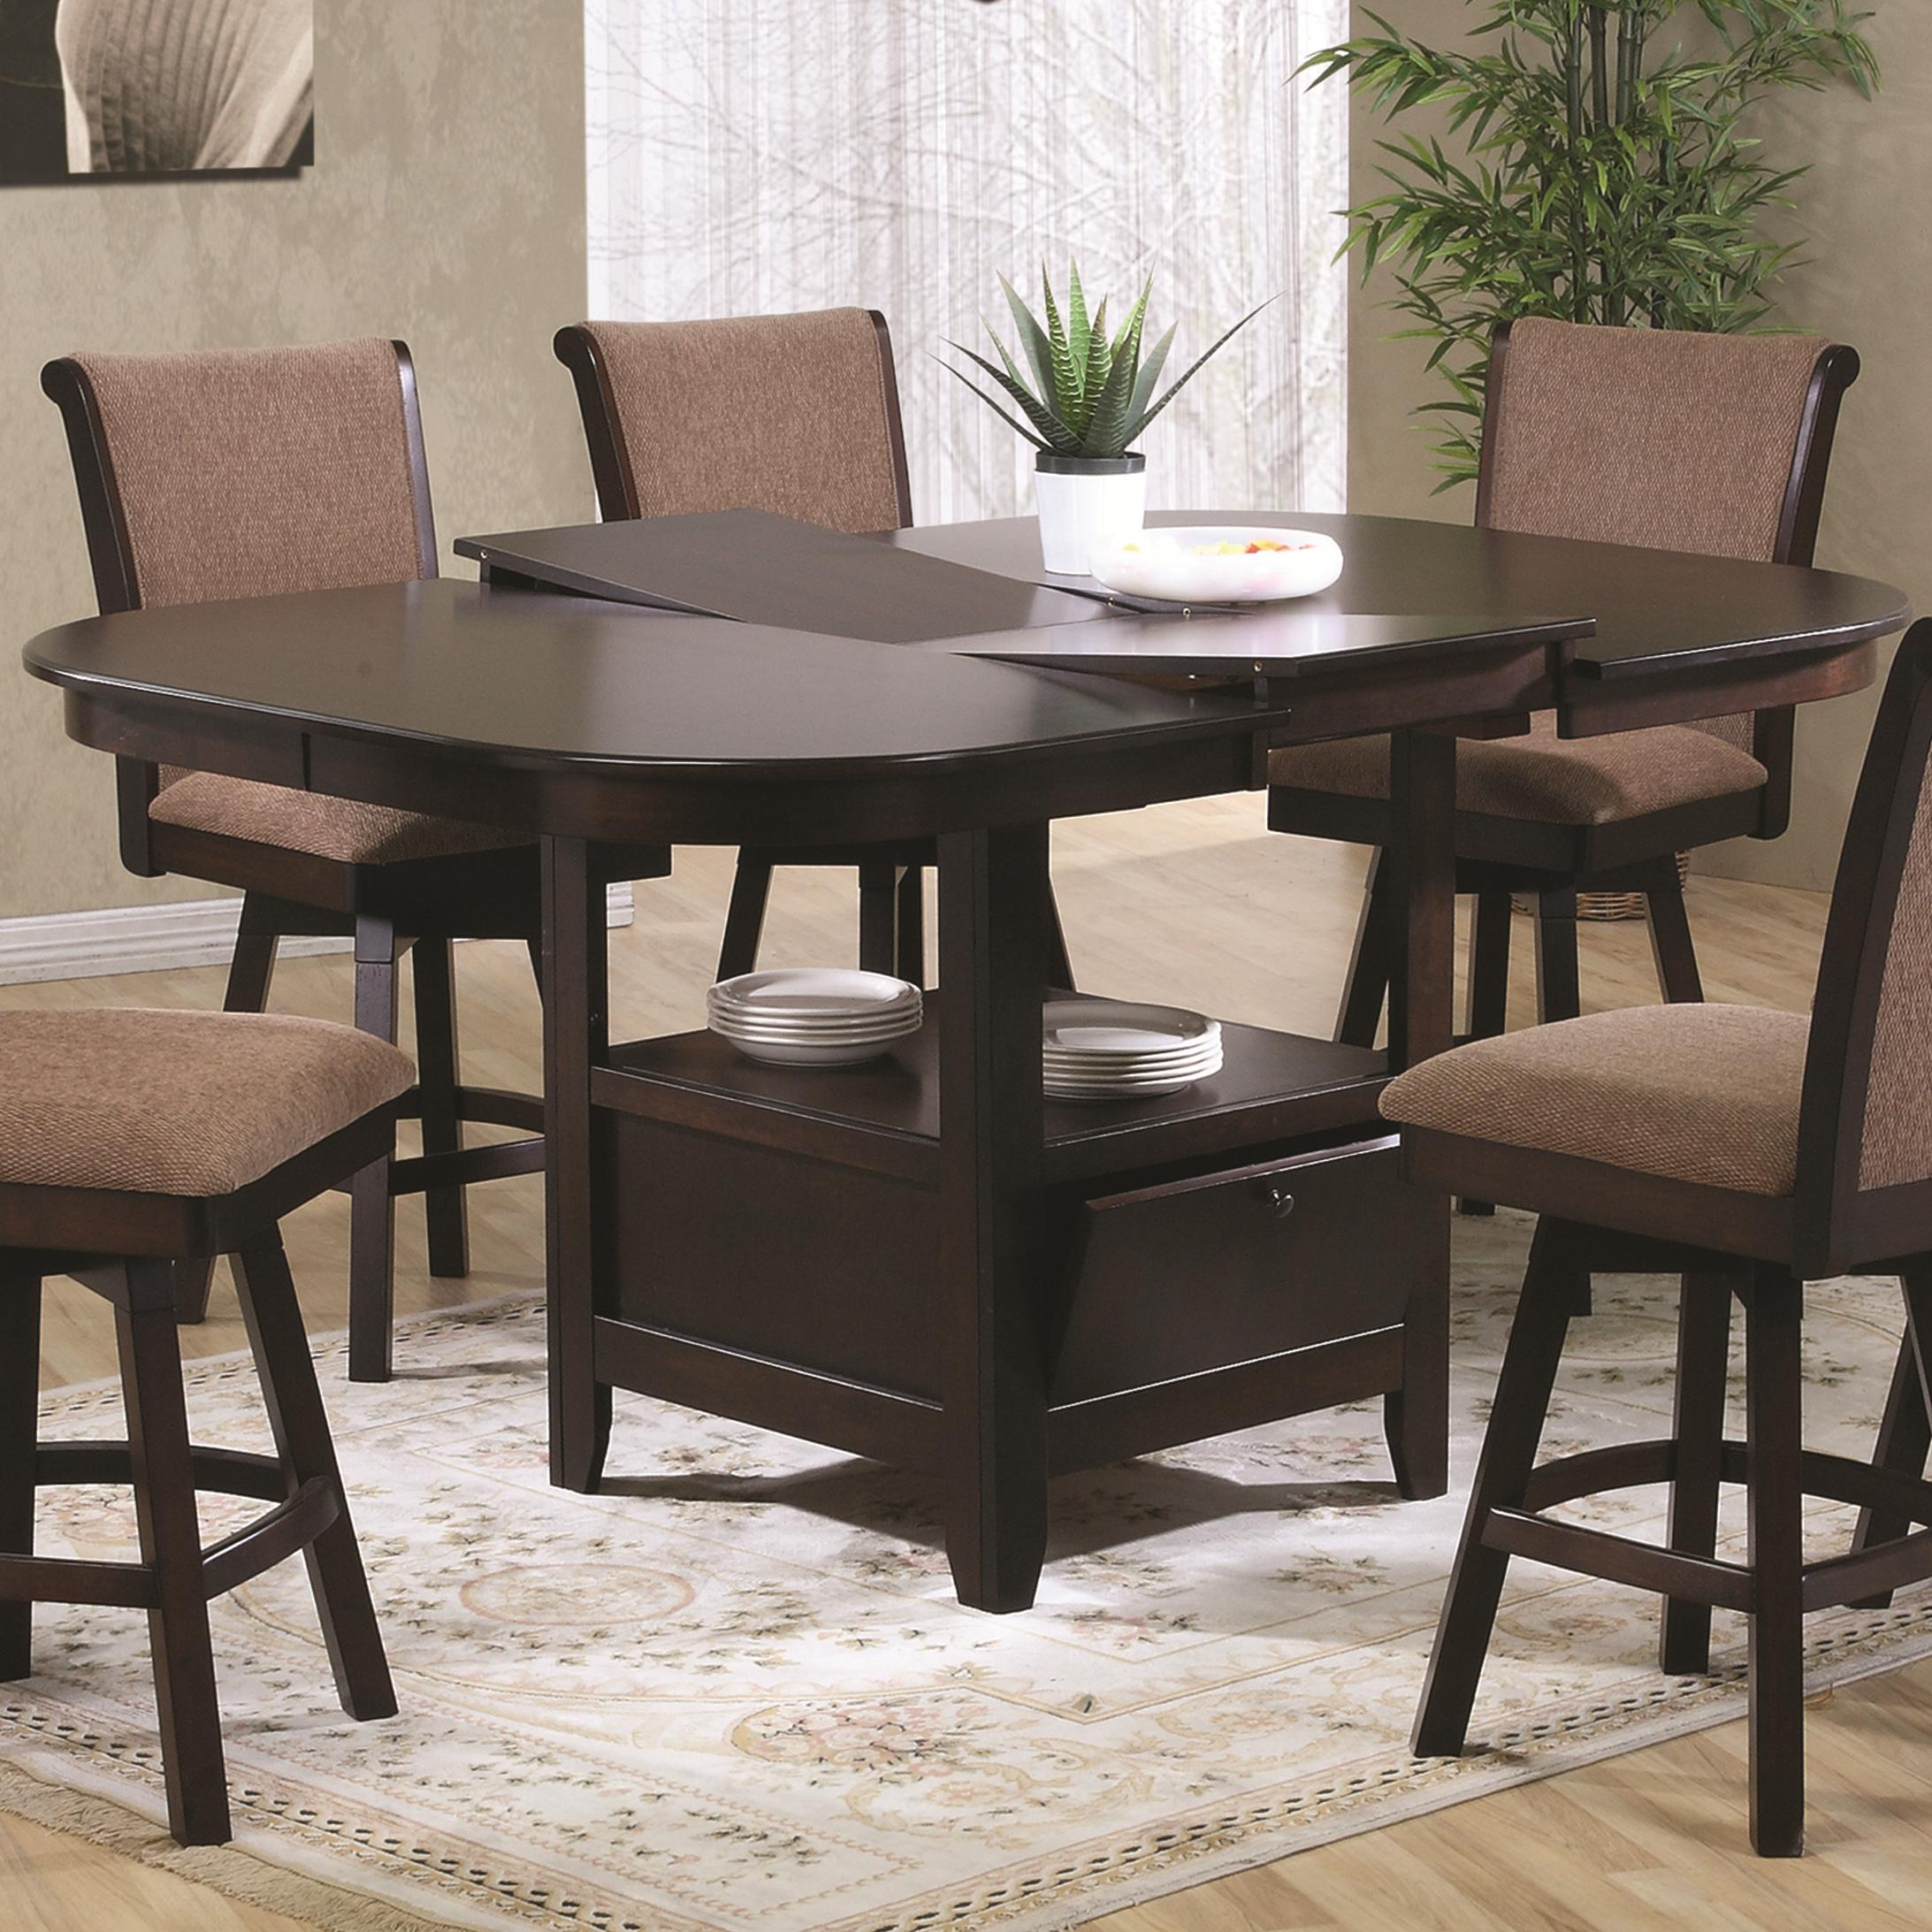 U.S. Furniture Inc 2241/2242 Dining Table - Item Number: 2241